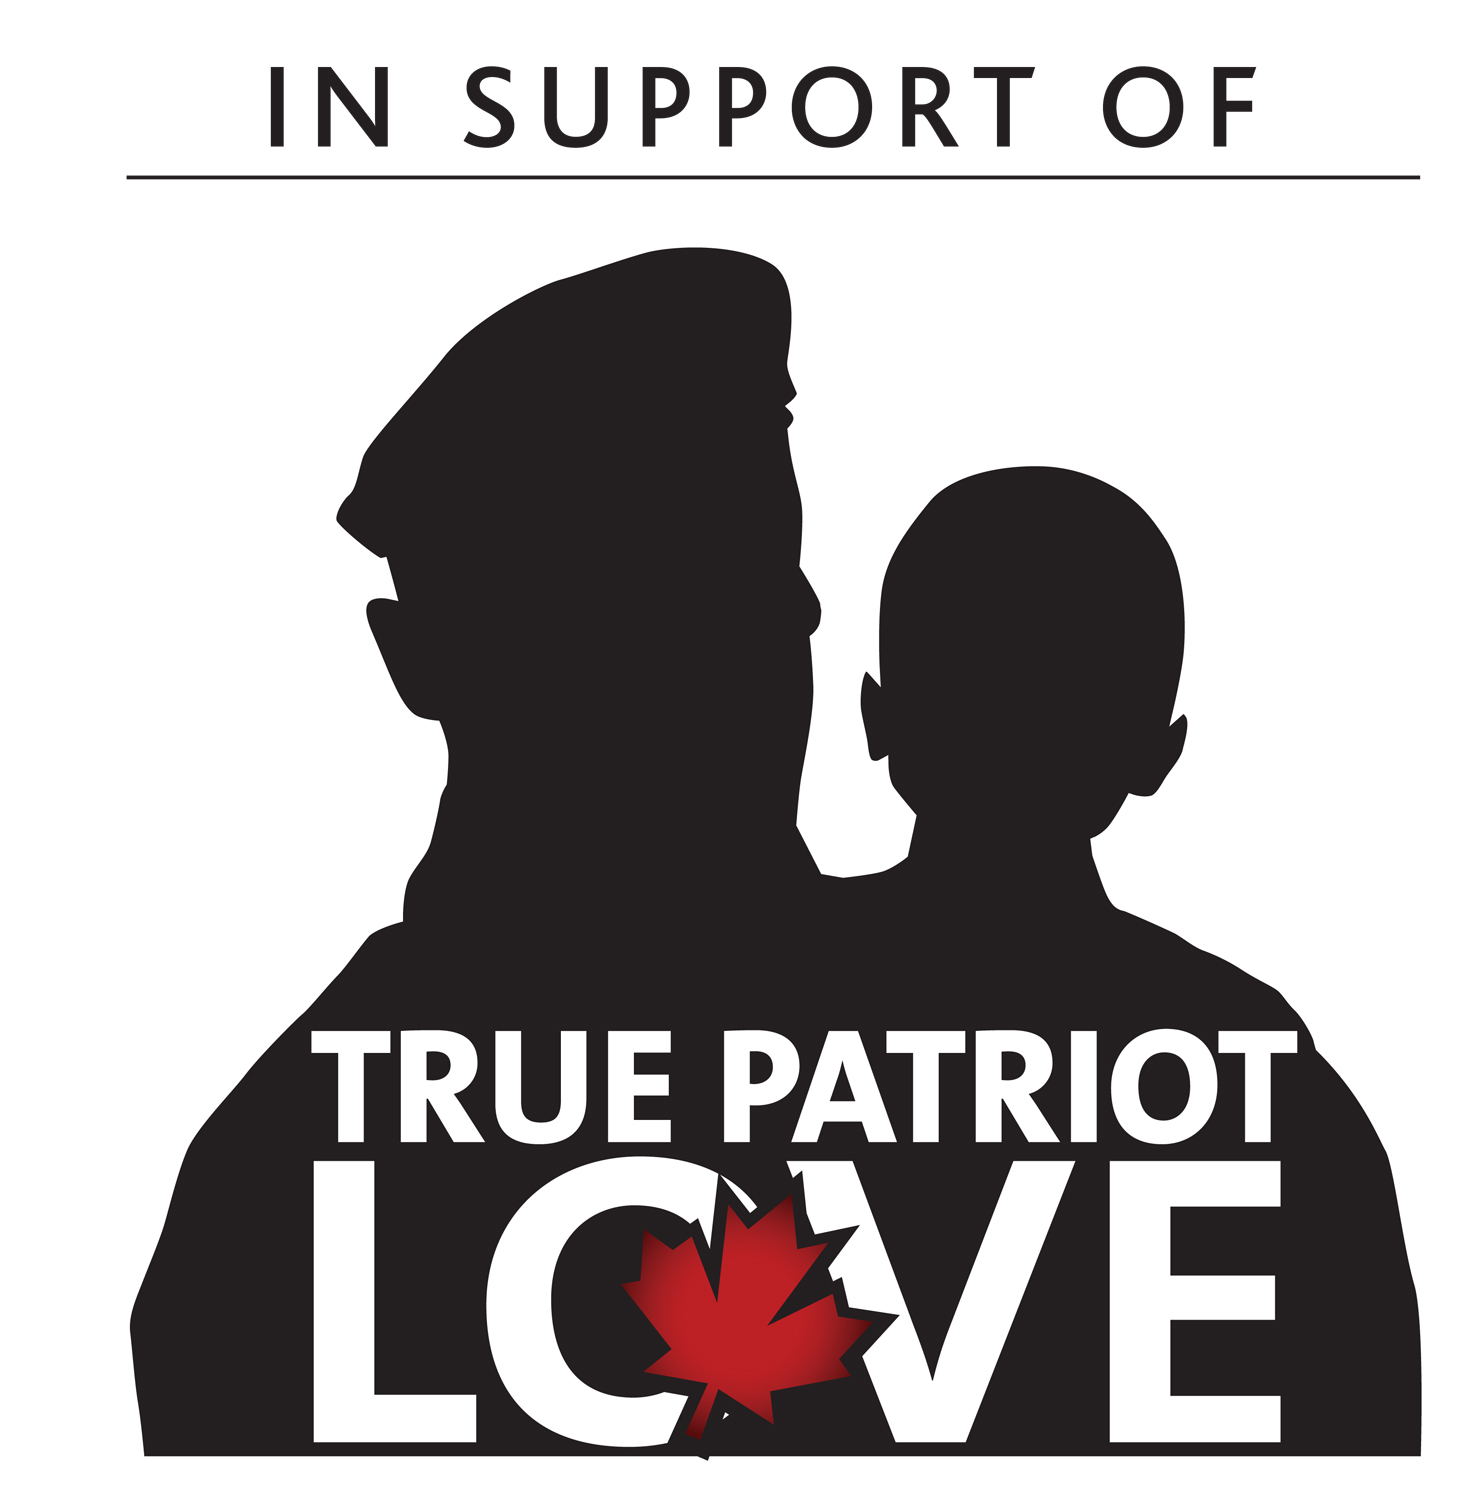 In support of_TPL E-1333FA5.jpg